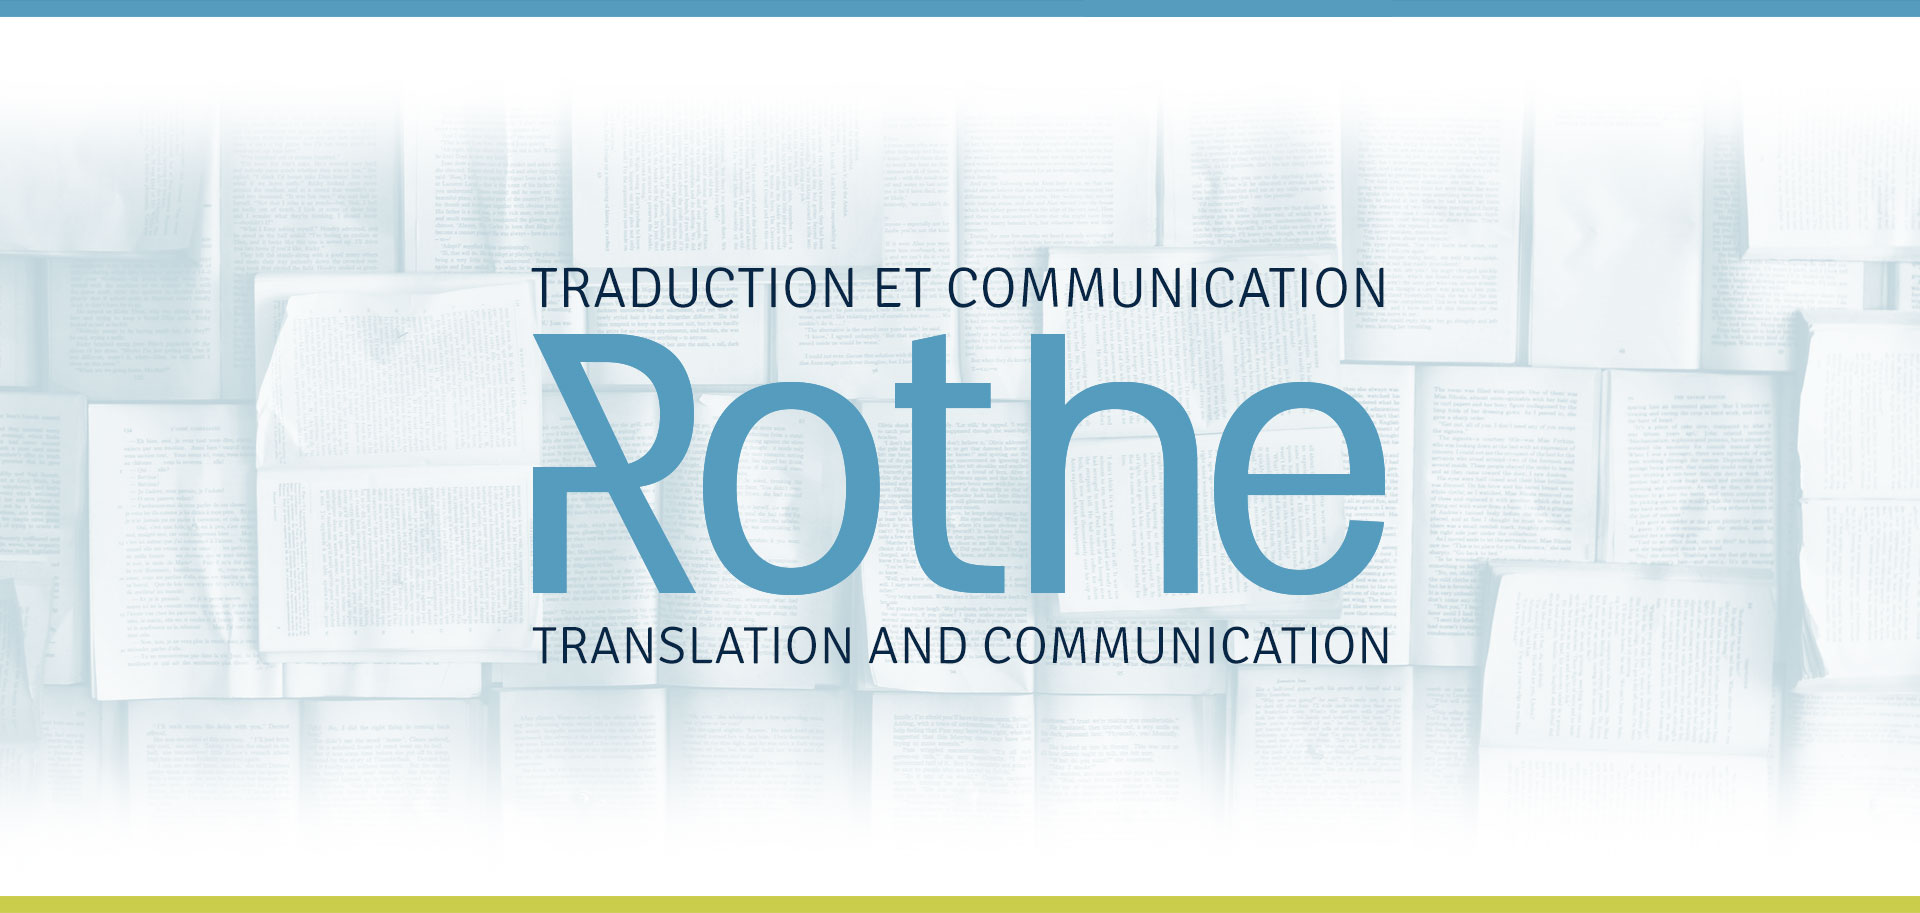 Corporate Services Traduction Rothe Translation And Communication Professional English